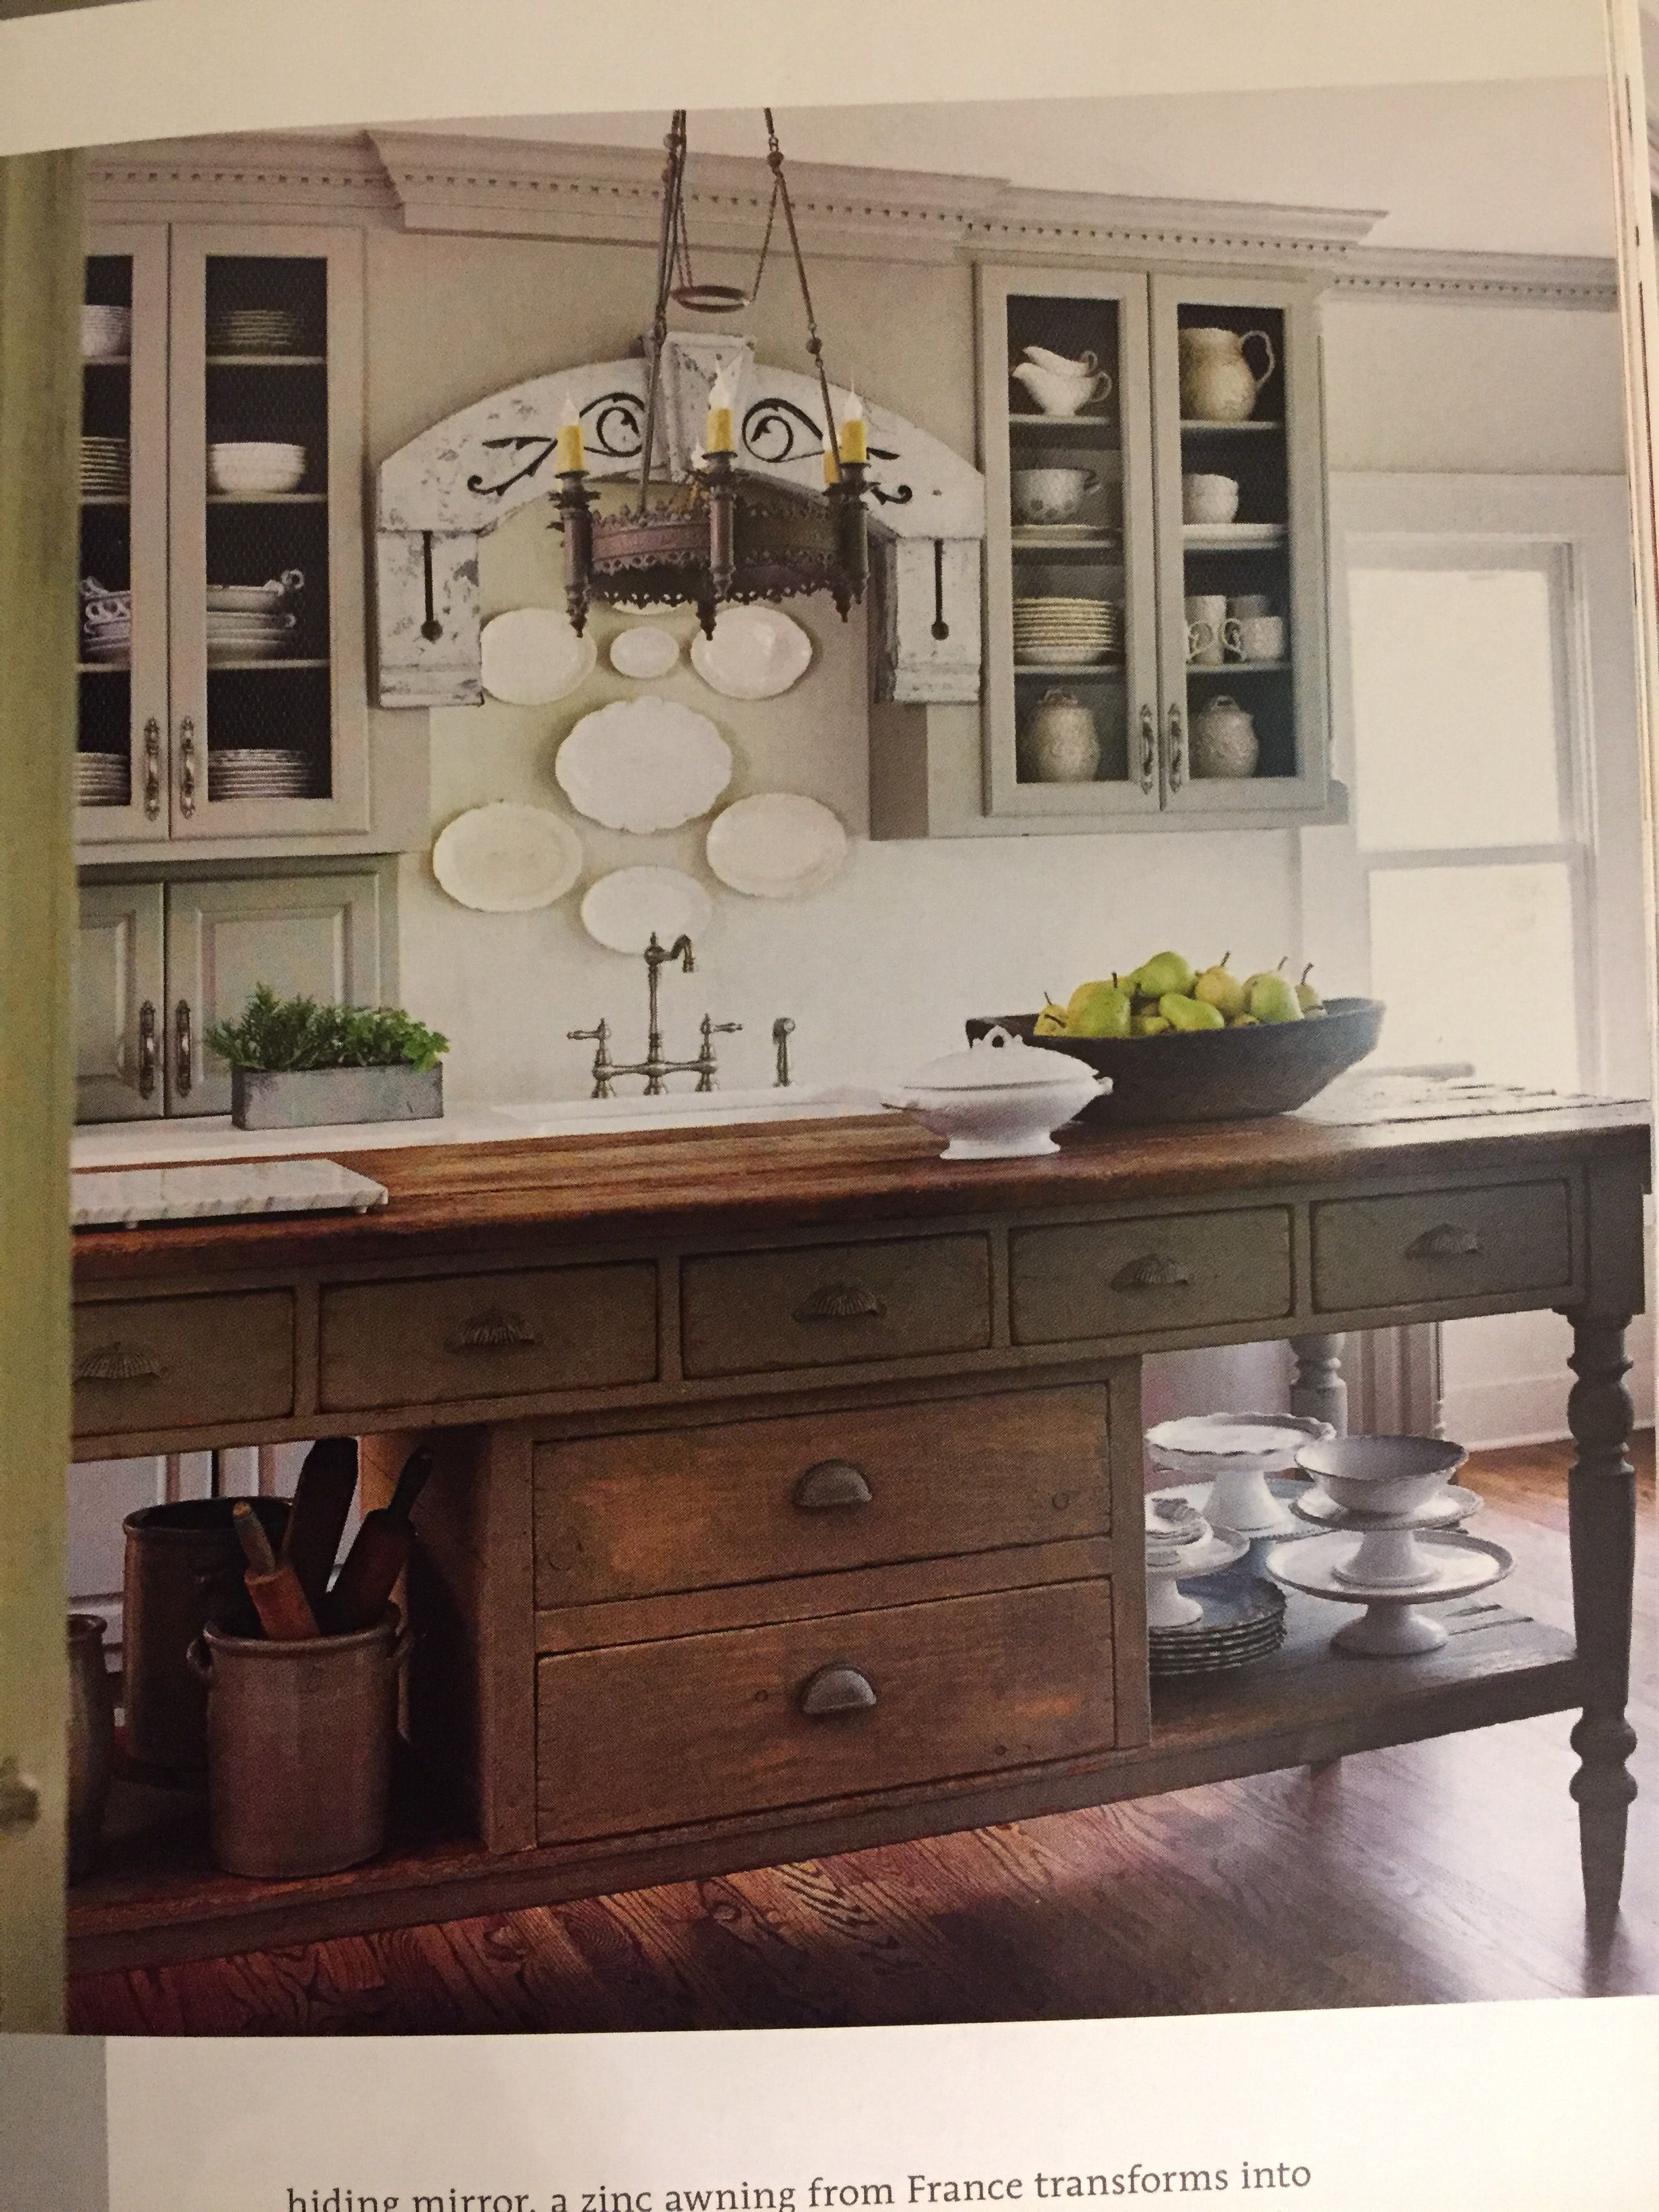 Pin by angeliquelivingantik on Lacey Inspiry   Antique kitchen ...